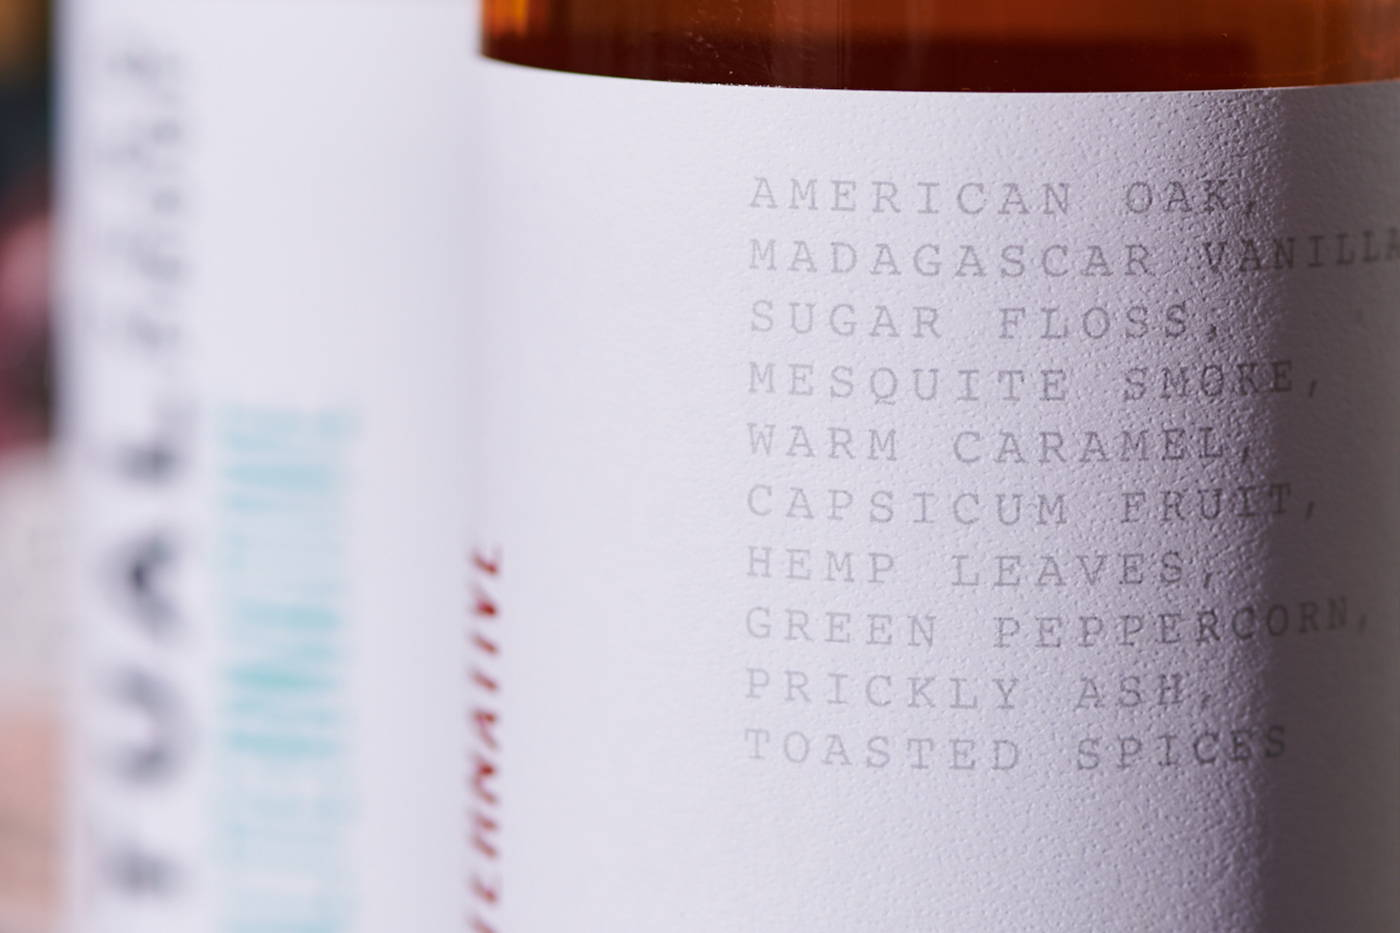 The ingredients in Ritual zero-proof whiskey include American oak, Madagascar vanilla, sugar floss and mesquite smoke.